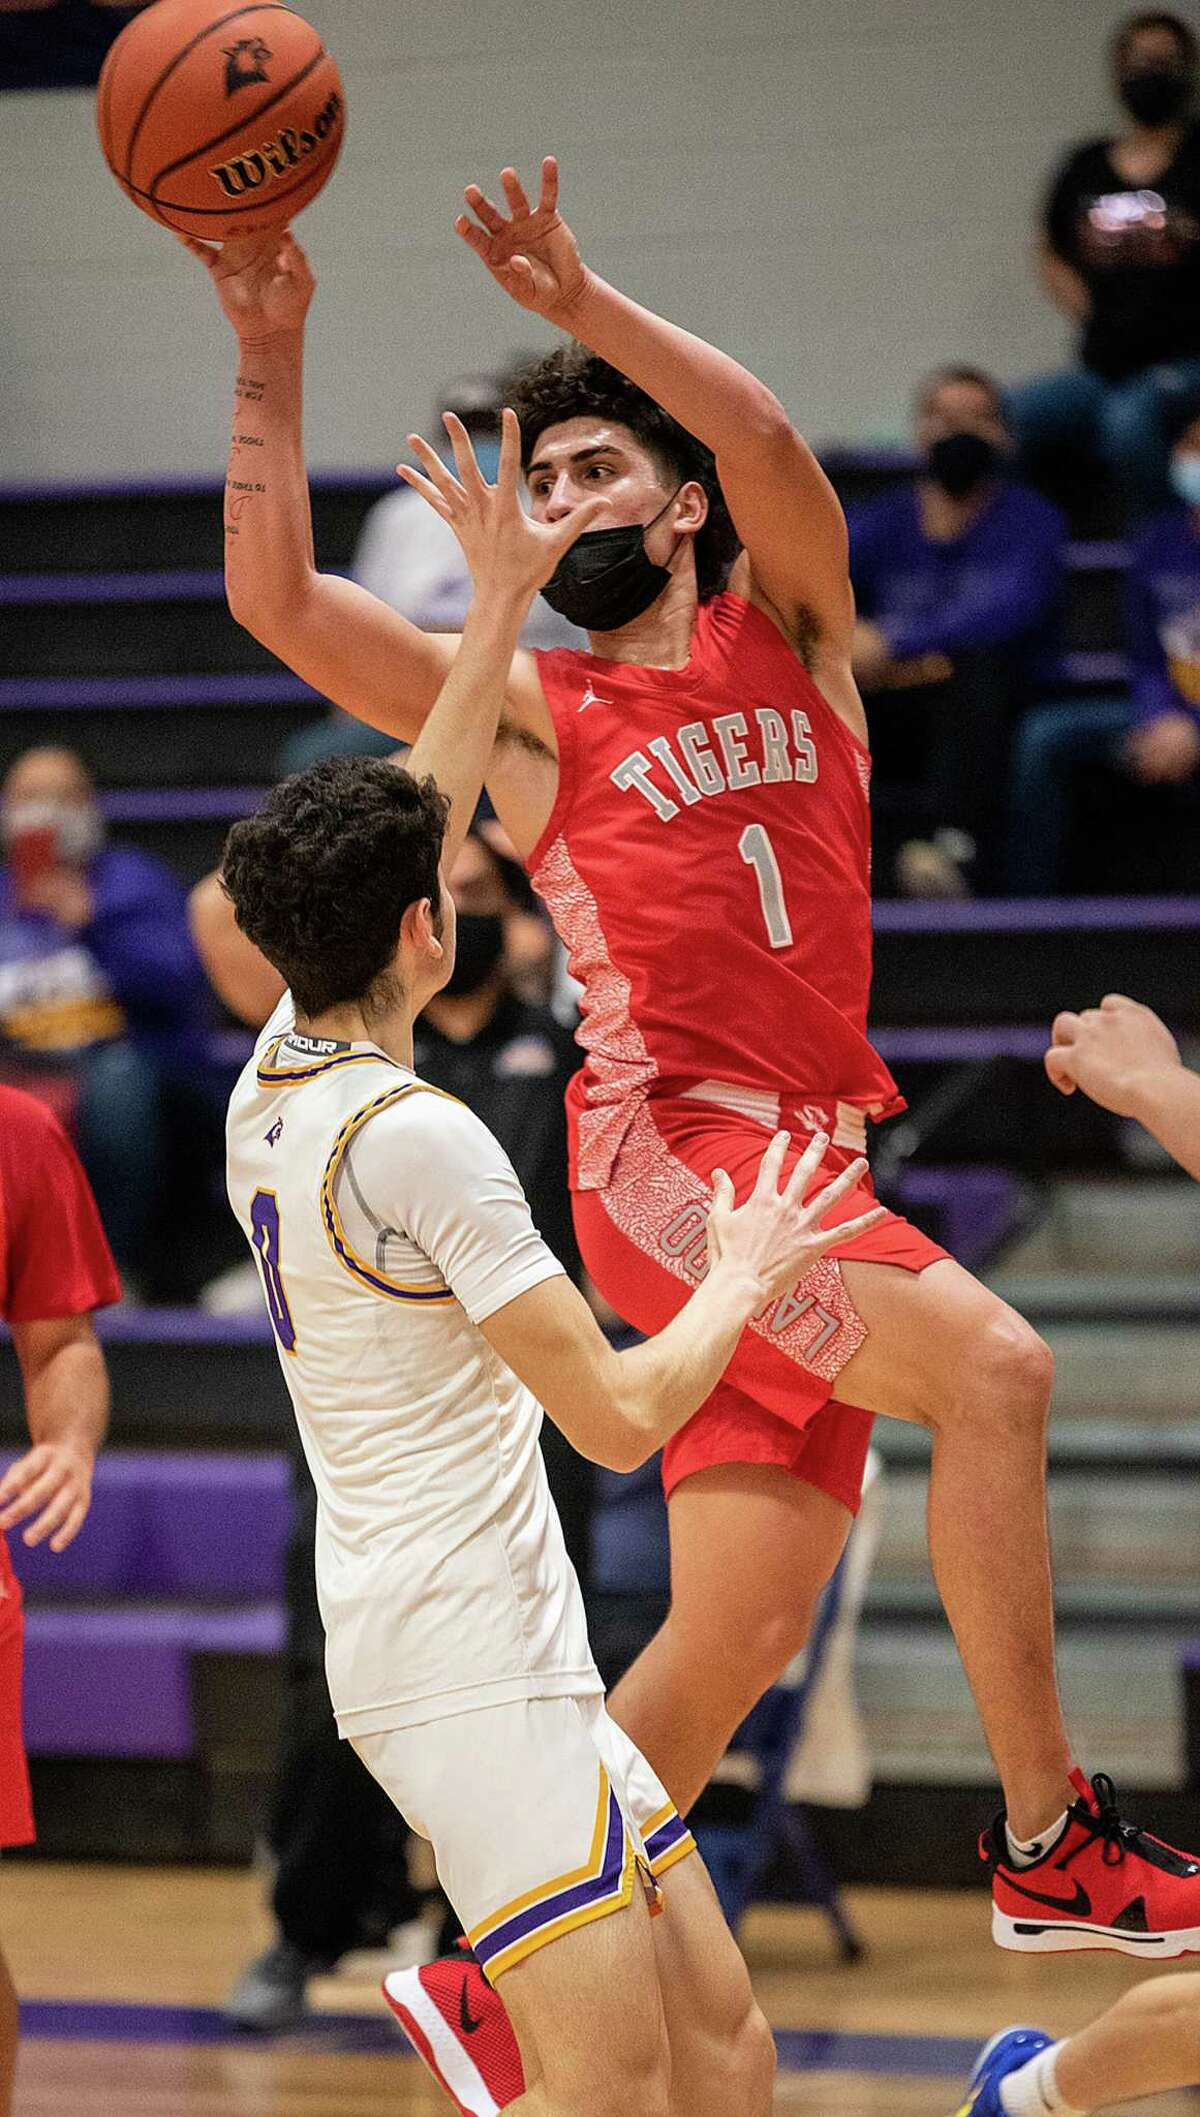 Chris Martinez scored a team-high 17 points Tuesday as Martin was eliminated with a 64-55 loss to Corpus Christi Veterans Memorial in the opening round of the playoffs.